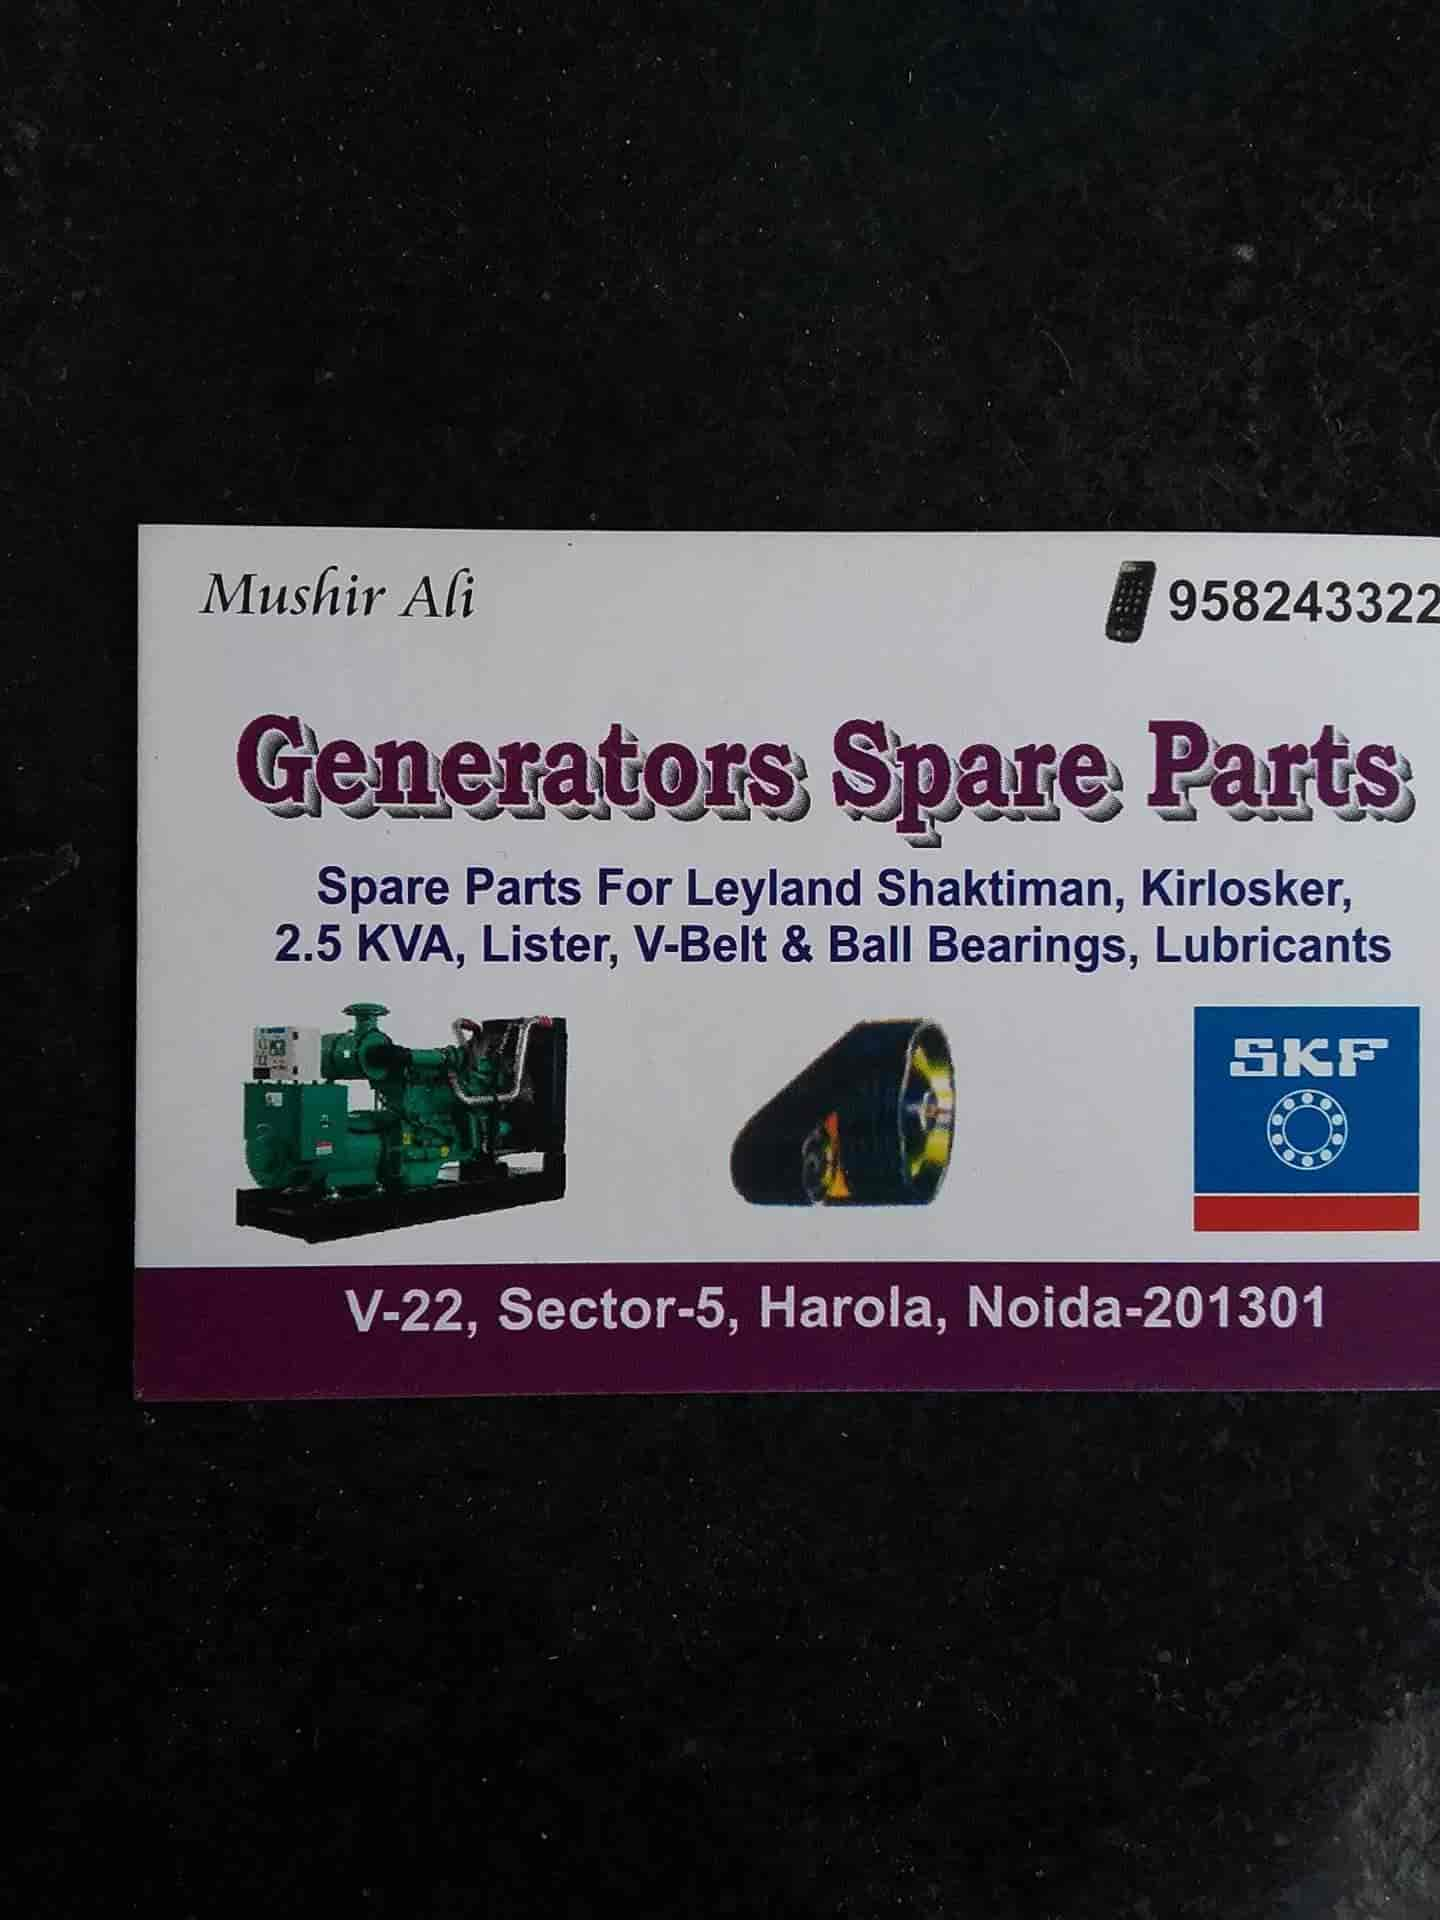 Generator Spare Part Photos, Sector 5, Noida- Pictures & Images